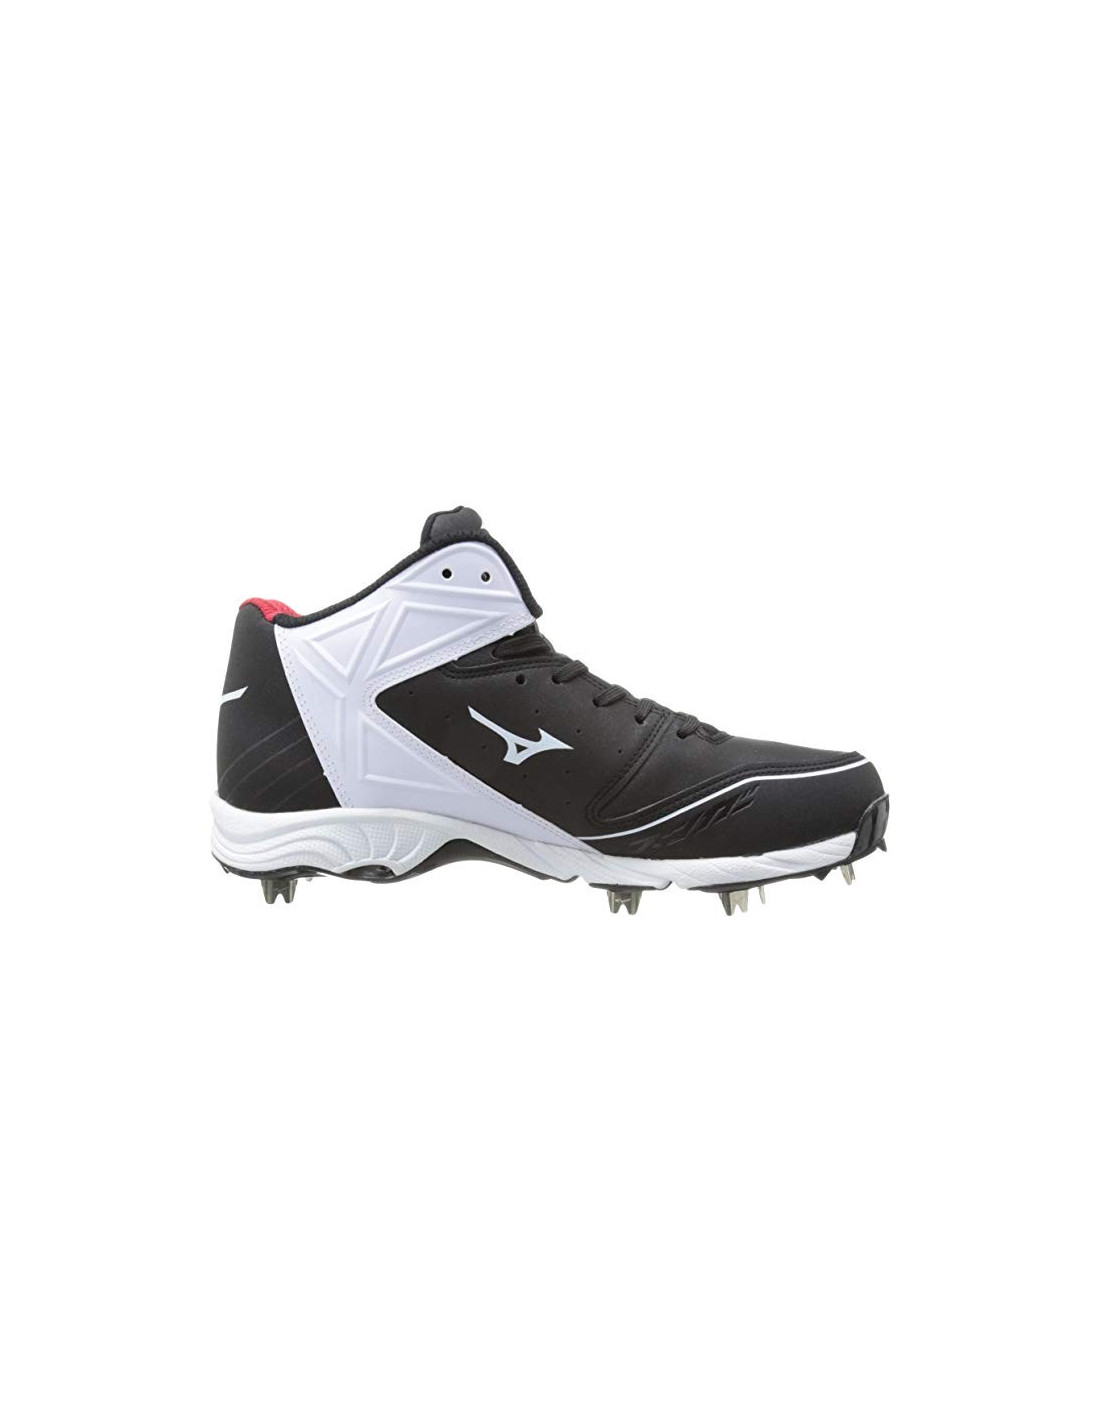 7f345999d976 Mizuno 9 Spike Adv. Swagger 2 Baseball Cleats - Sport House Shop